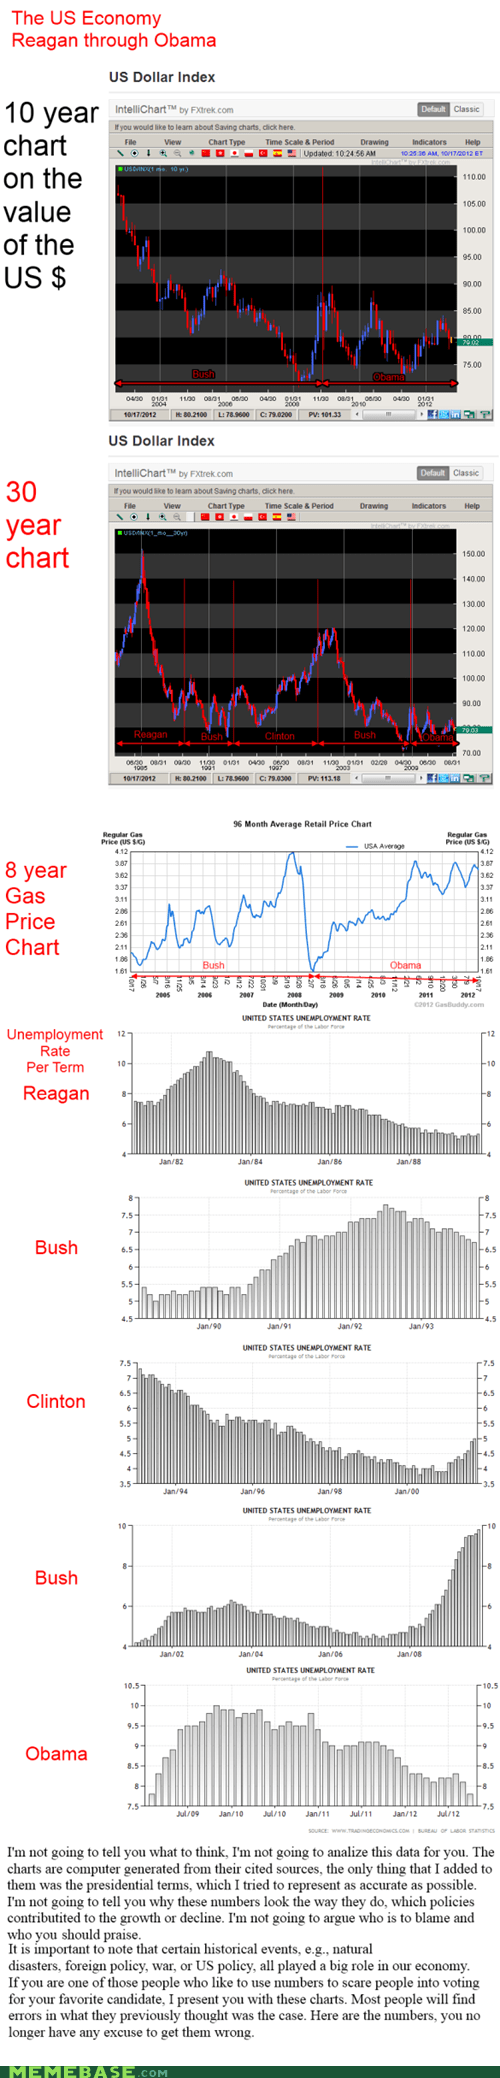 us america economy obama bush clinton politics